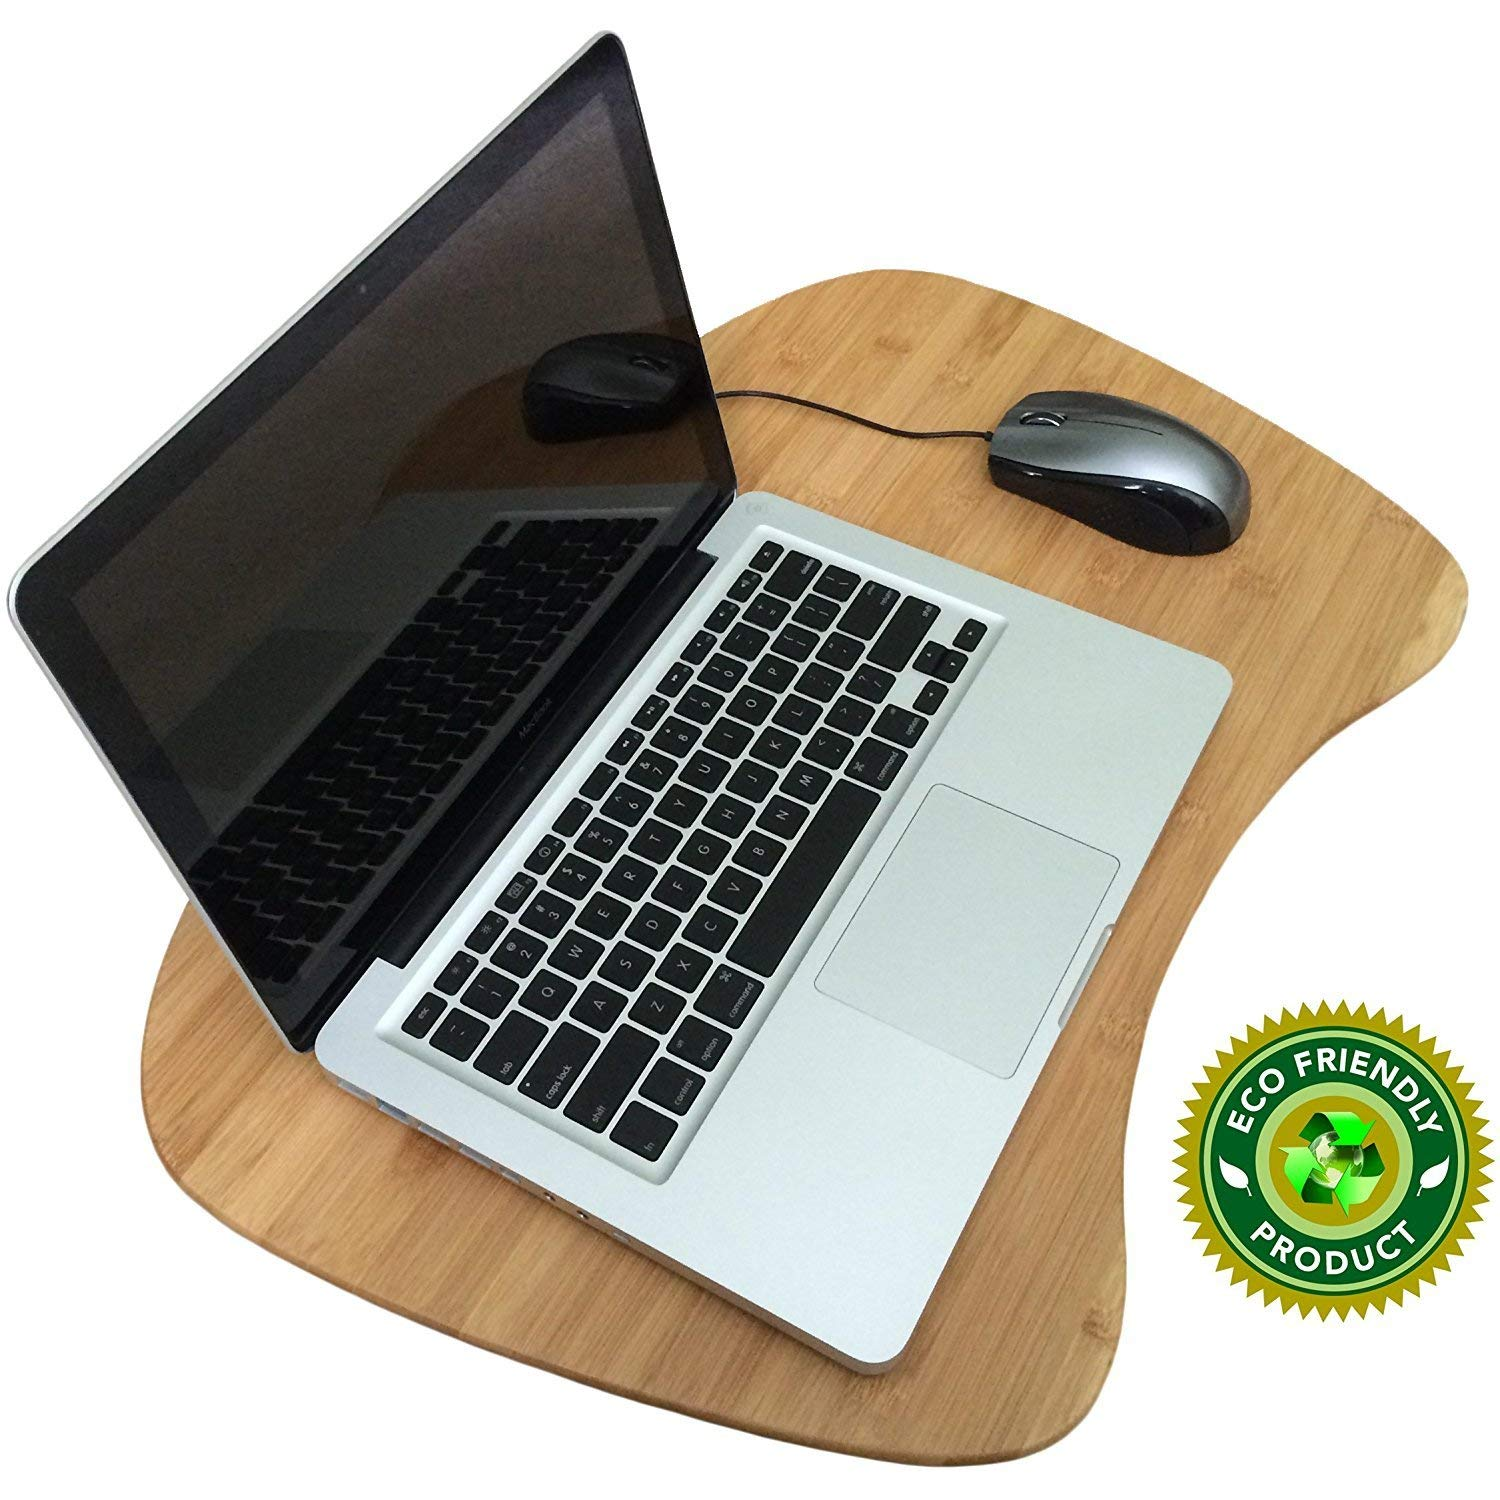 Bamboo Lap Desk for Laptop, Large Portable Laptop Desk Tray with Cushion Pilliow and Handle, Suitable as LapDesk Stand, Bed Tray, Book Stand, Writing Table - Pezin & Hulin